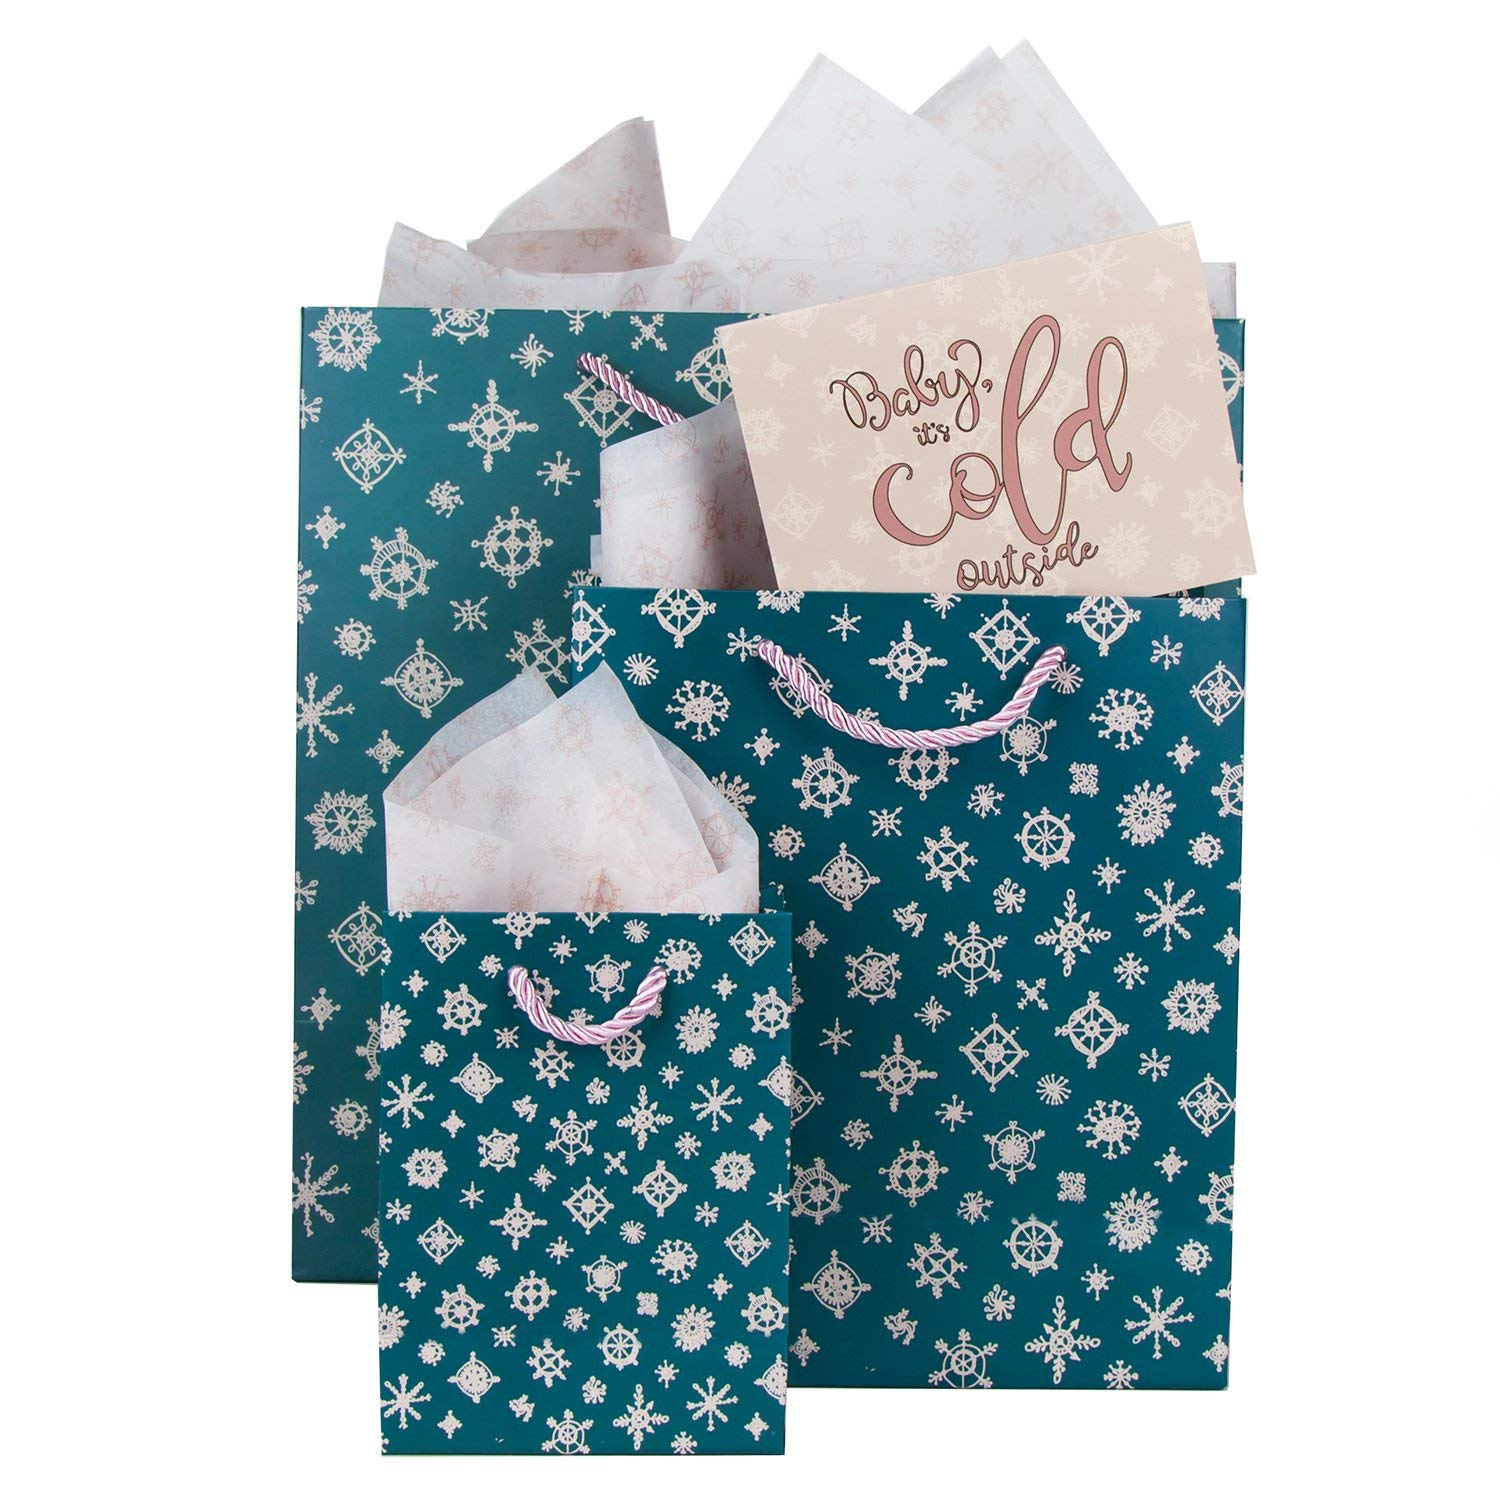 Gift Bags (3 ct) with Tissue Paper, Greeting Cards and Envelopes. Perfect Winter Gift Bags with Snowflakes. Large Gift Bag for Women and Kids in 3 Sizes (Large, Medium, and Small). Unique Design!